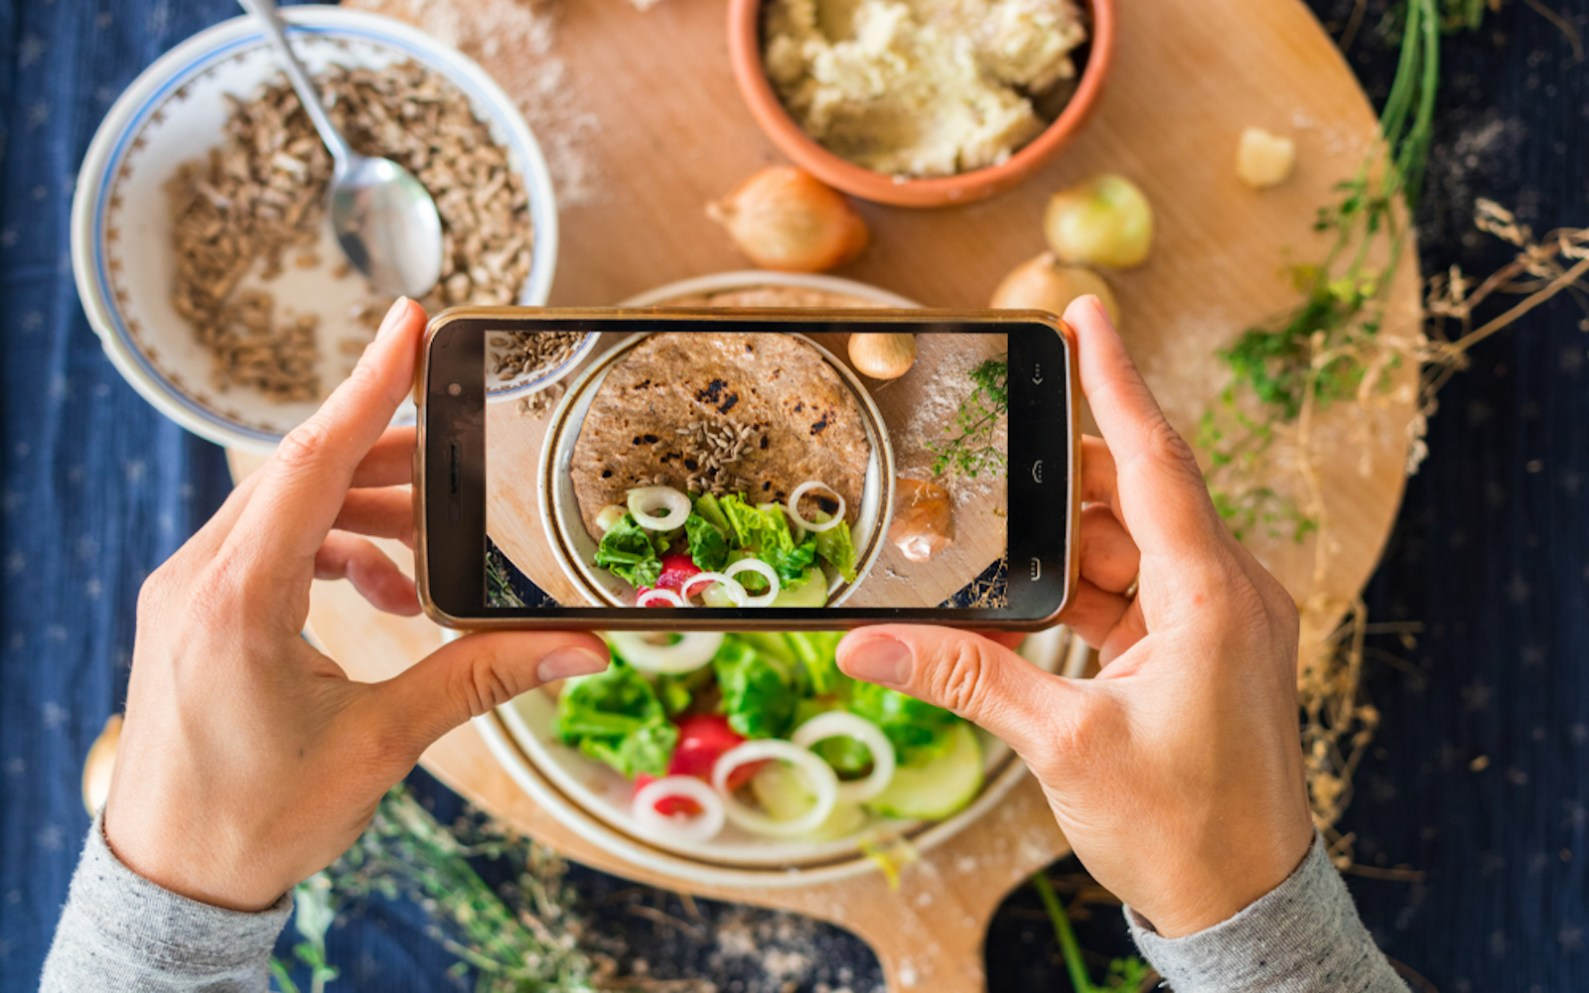 Instainspo upside down pizza bbq and curry bowls the best meals food forumfinder Gallery